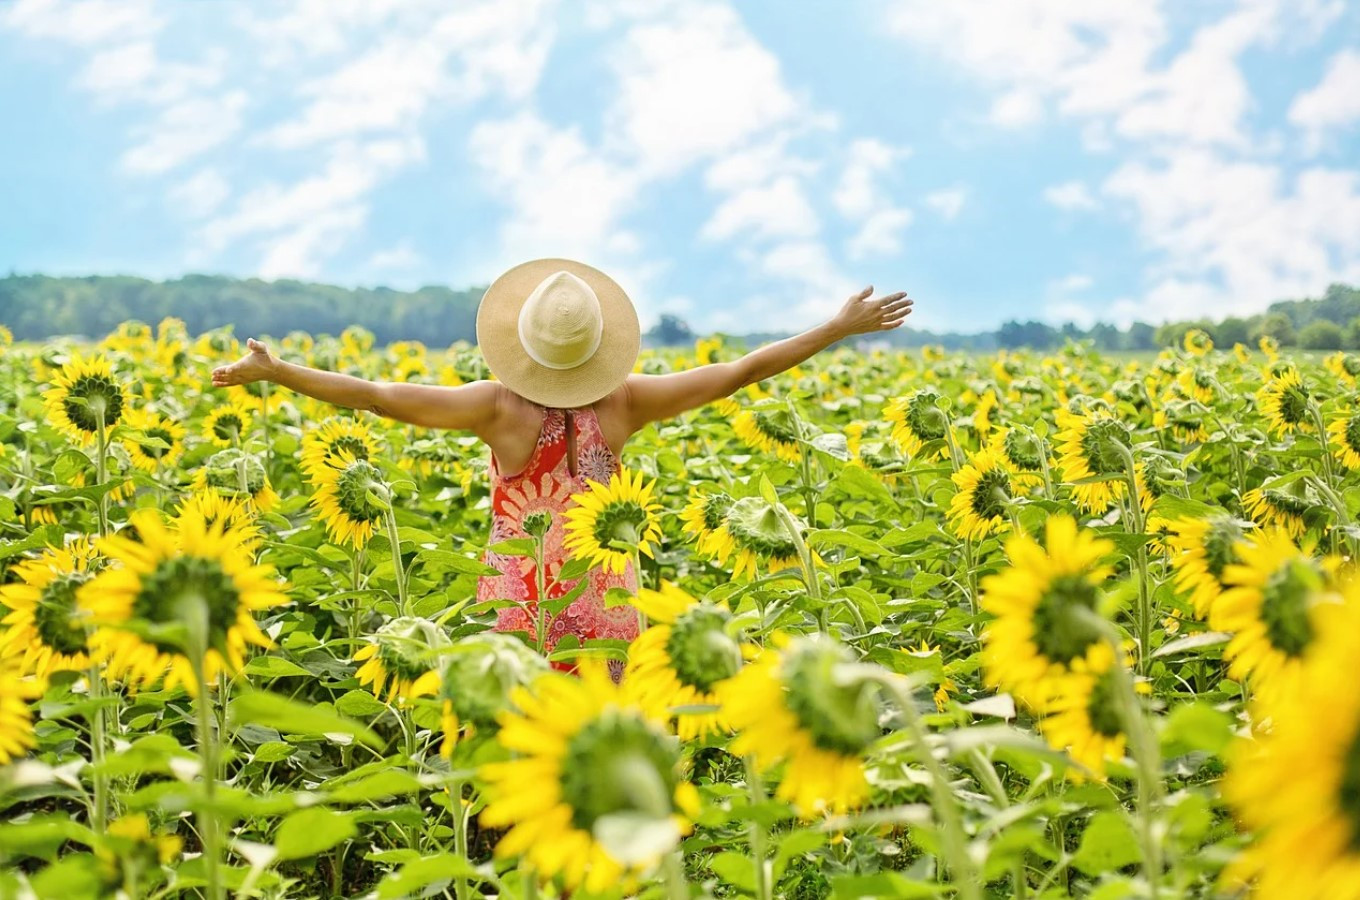 sunflower field with woman